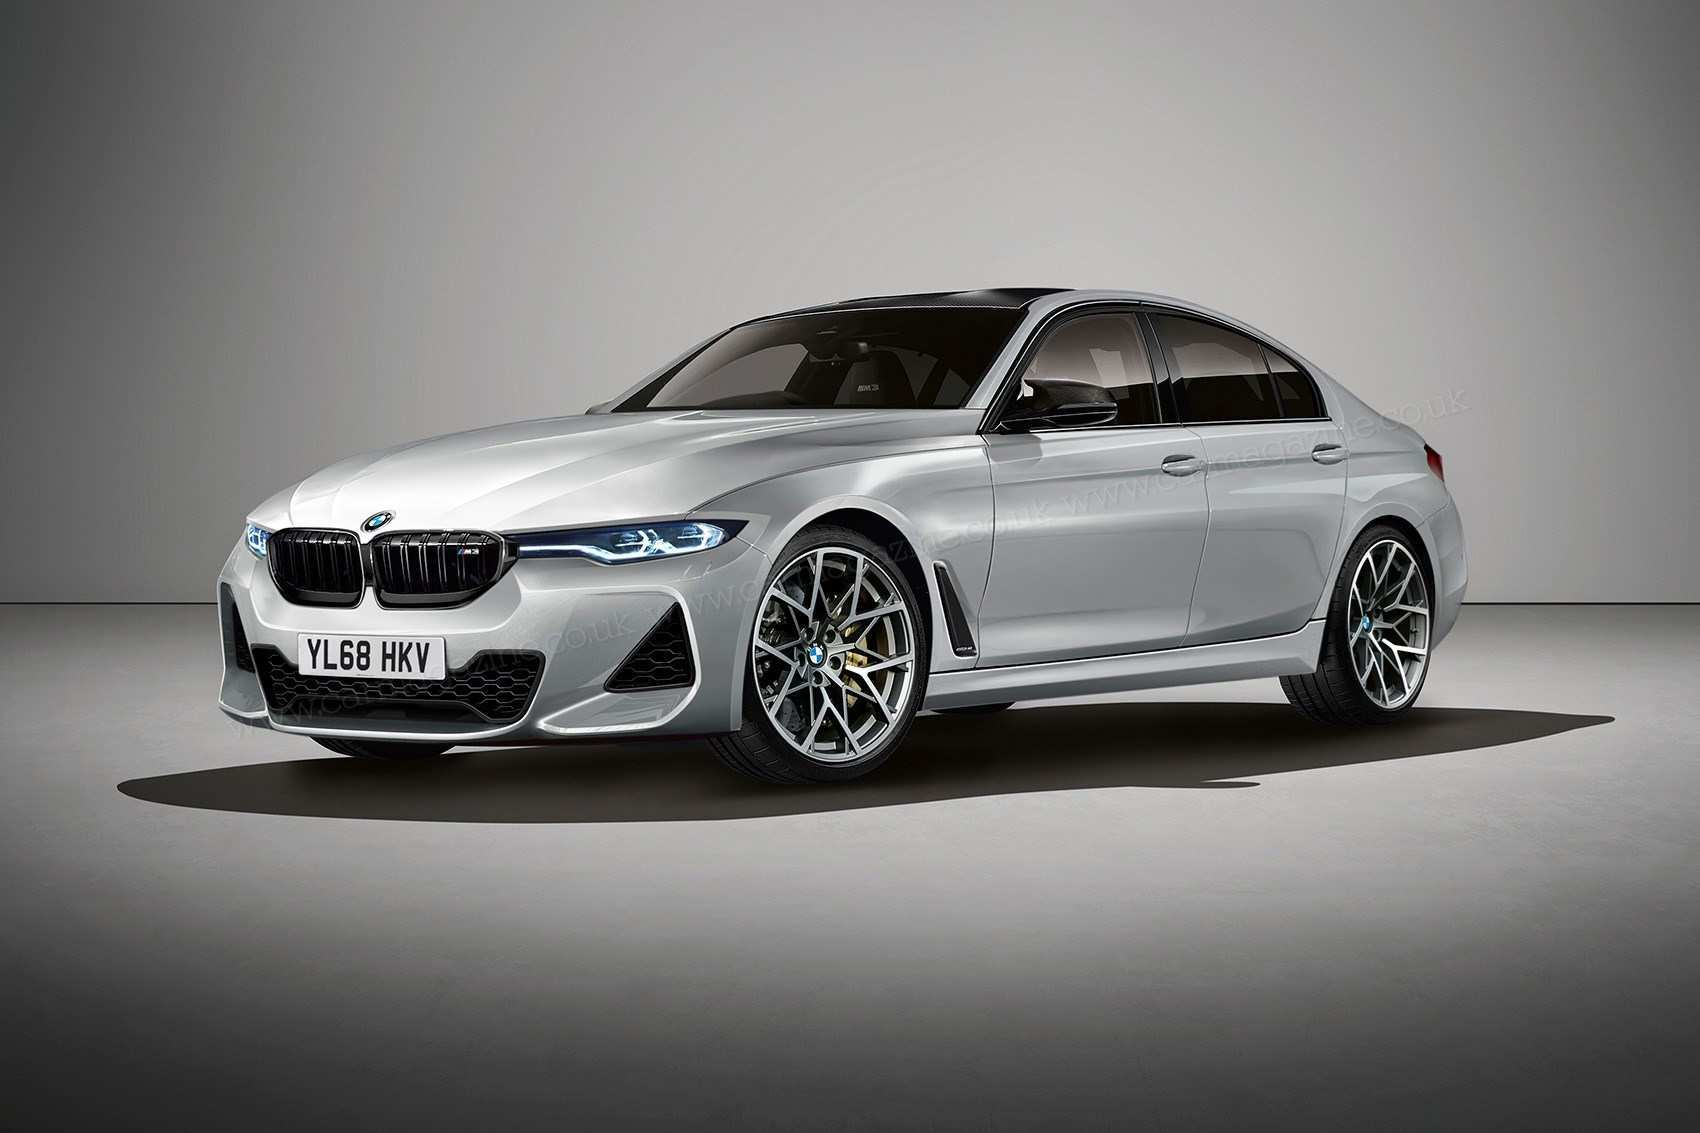 87 All New 2020 BMW M3 Release Date History